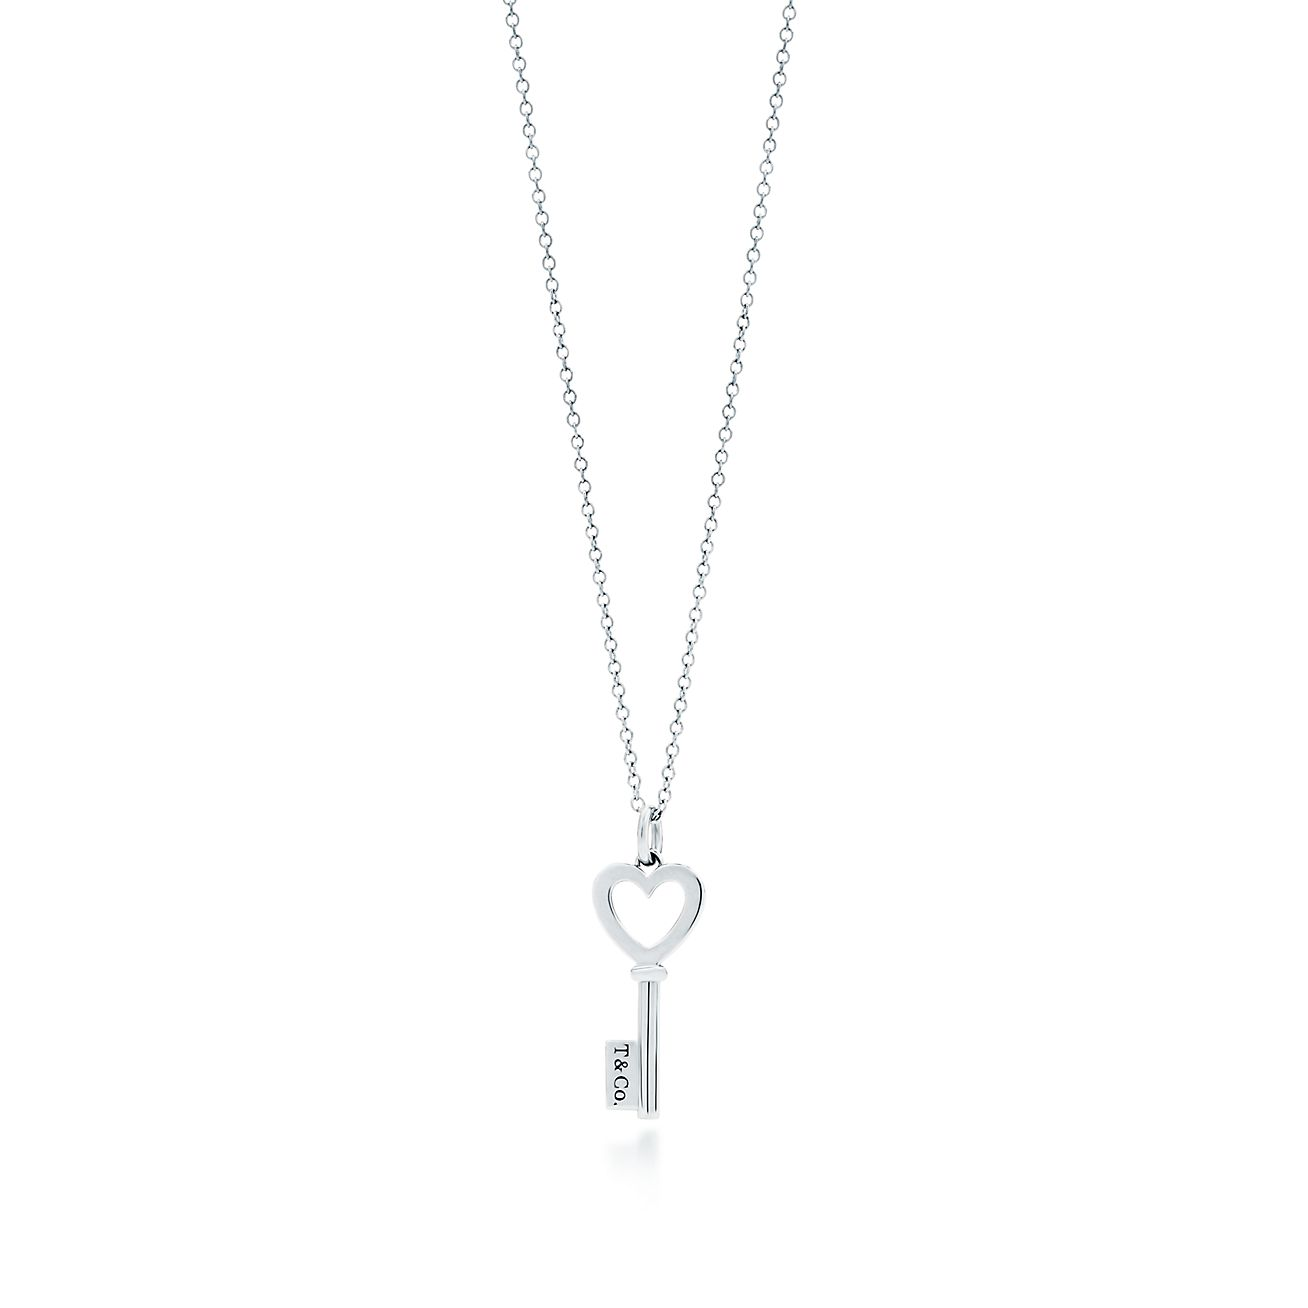 Tiffany Keys heart key pendant in sterling silver, mini. | Tiffany ...